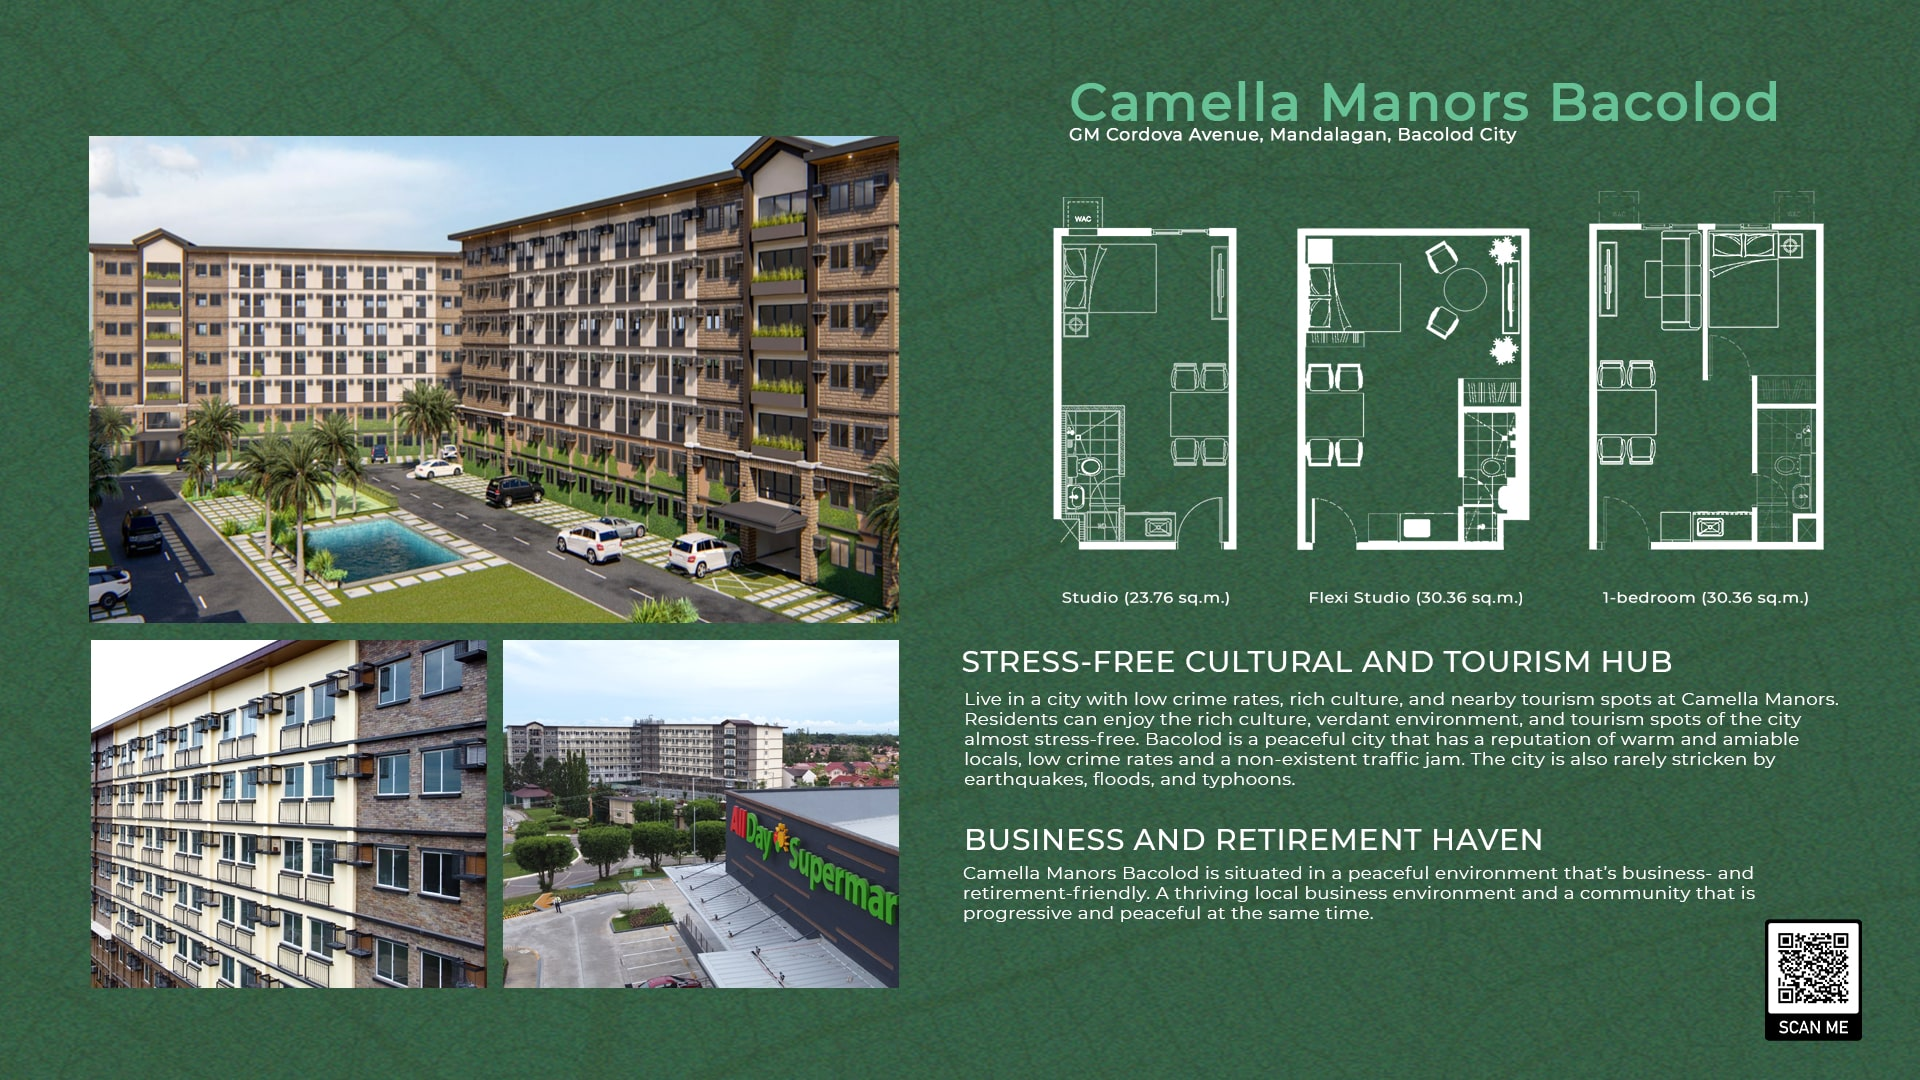 Camella Manors Bacolod - RFO Condo in Bacolod